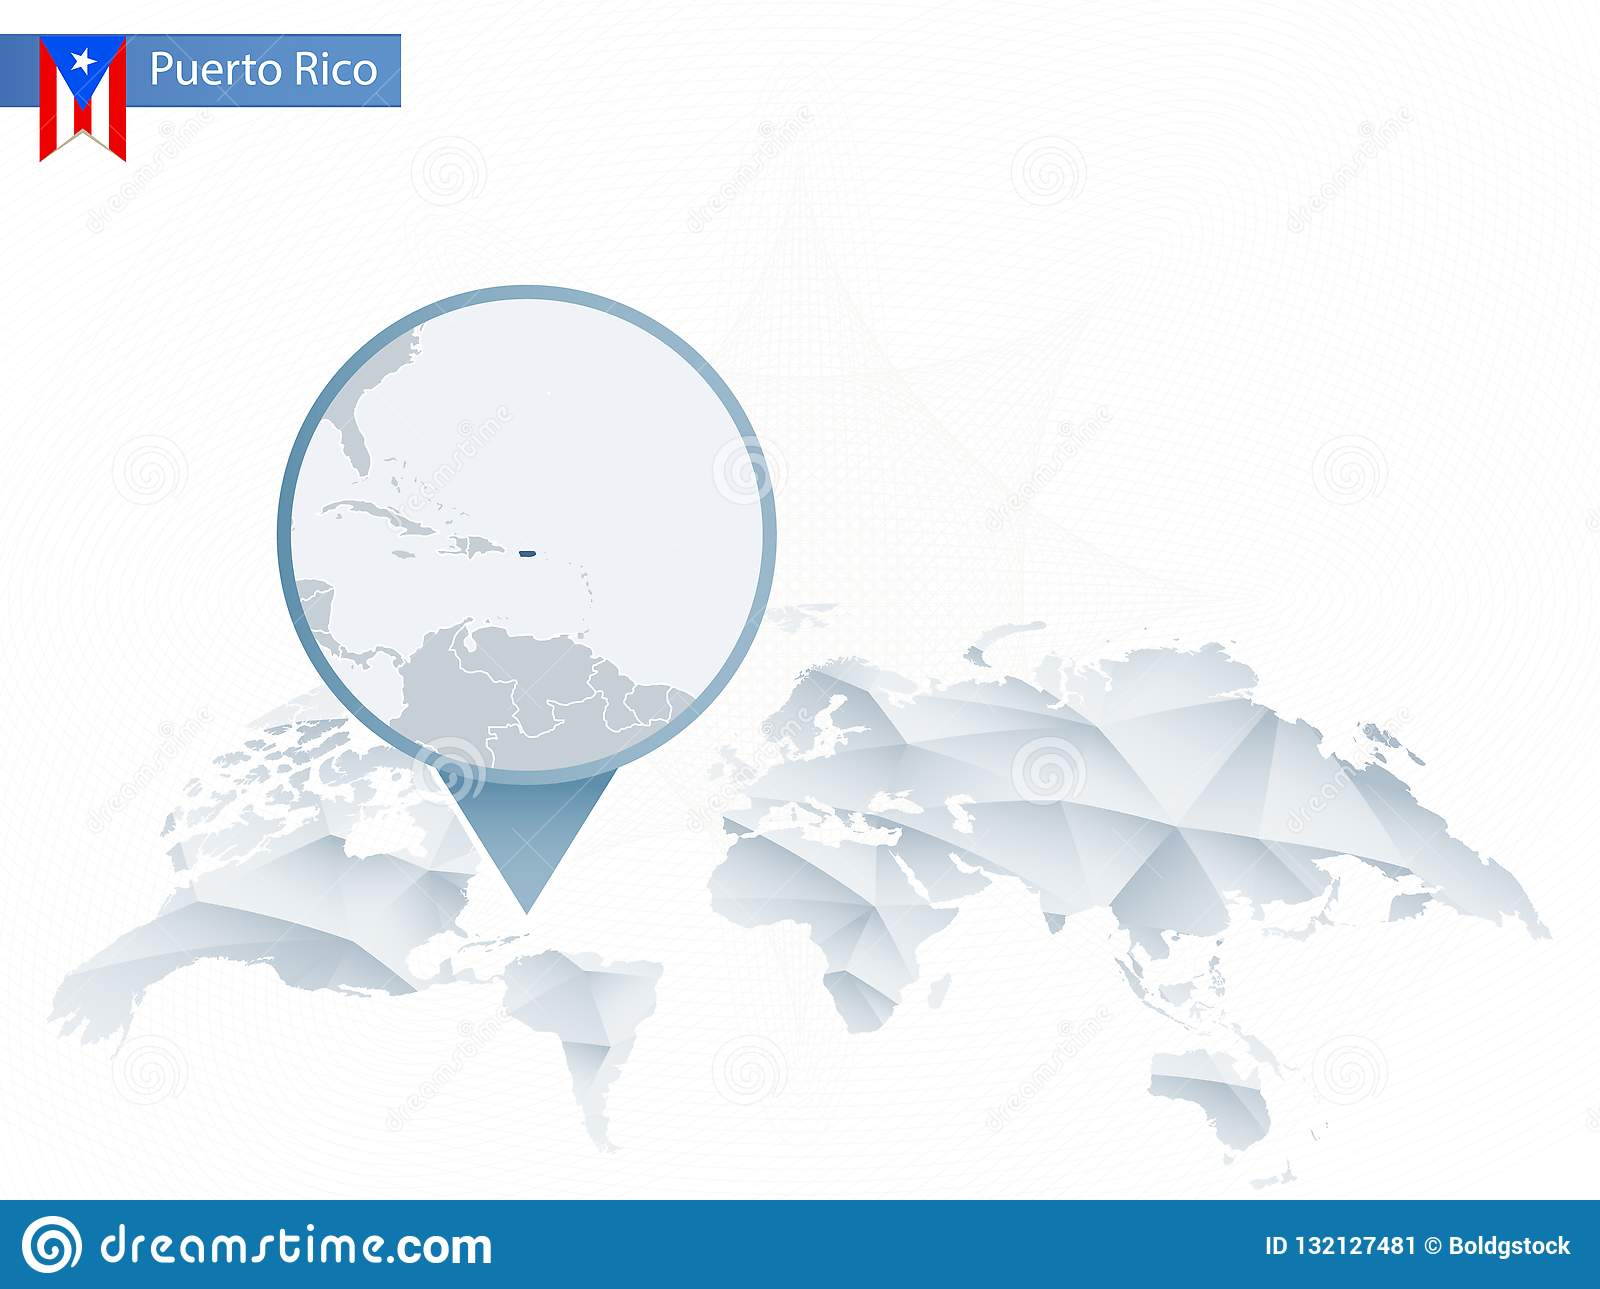 Abstract Rounded World Map With Pinned Detailed Puerto Rico ...